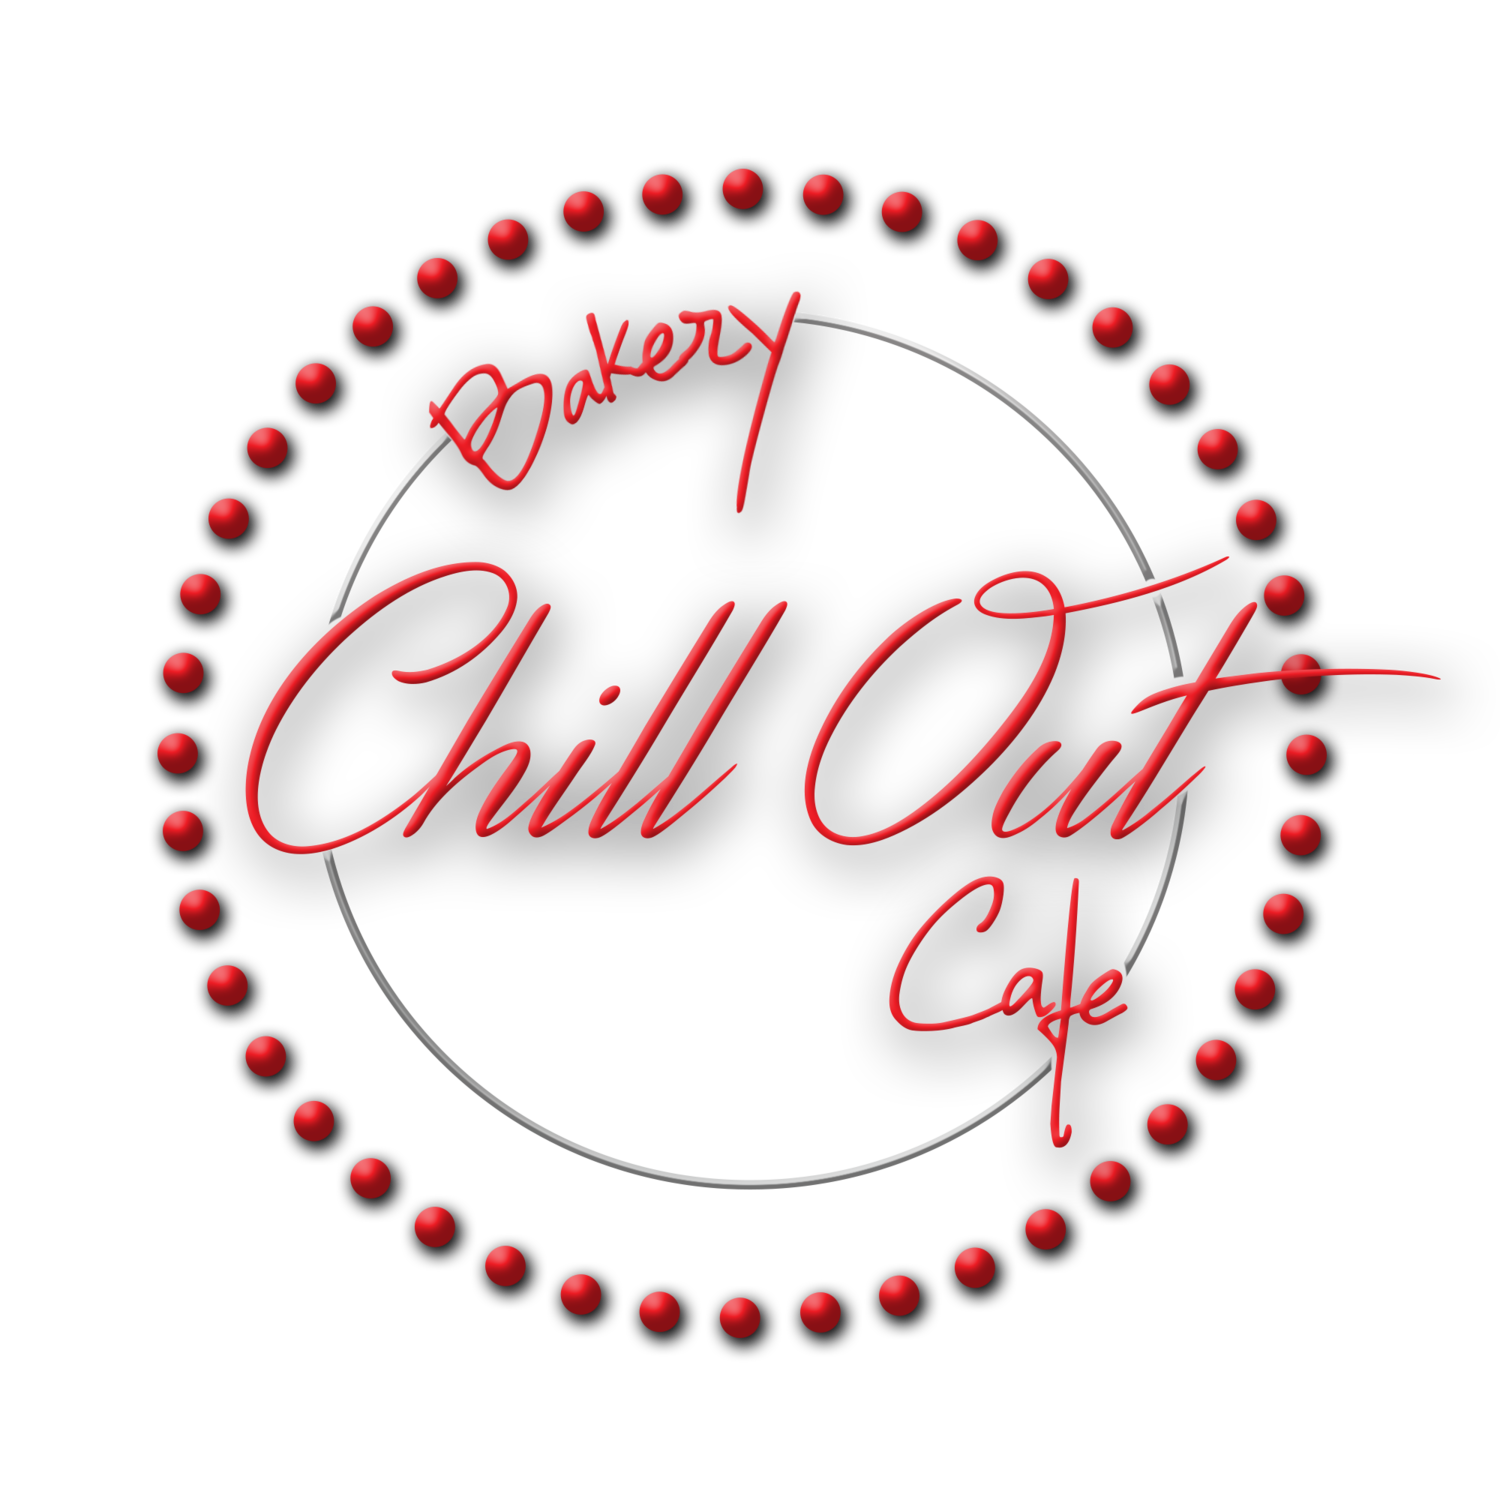 Chill Out Cafe and Bakery